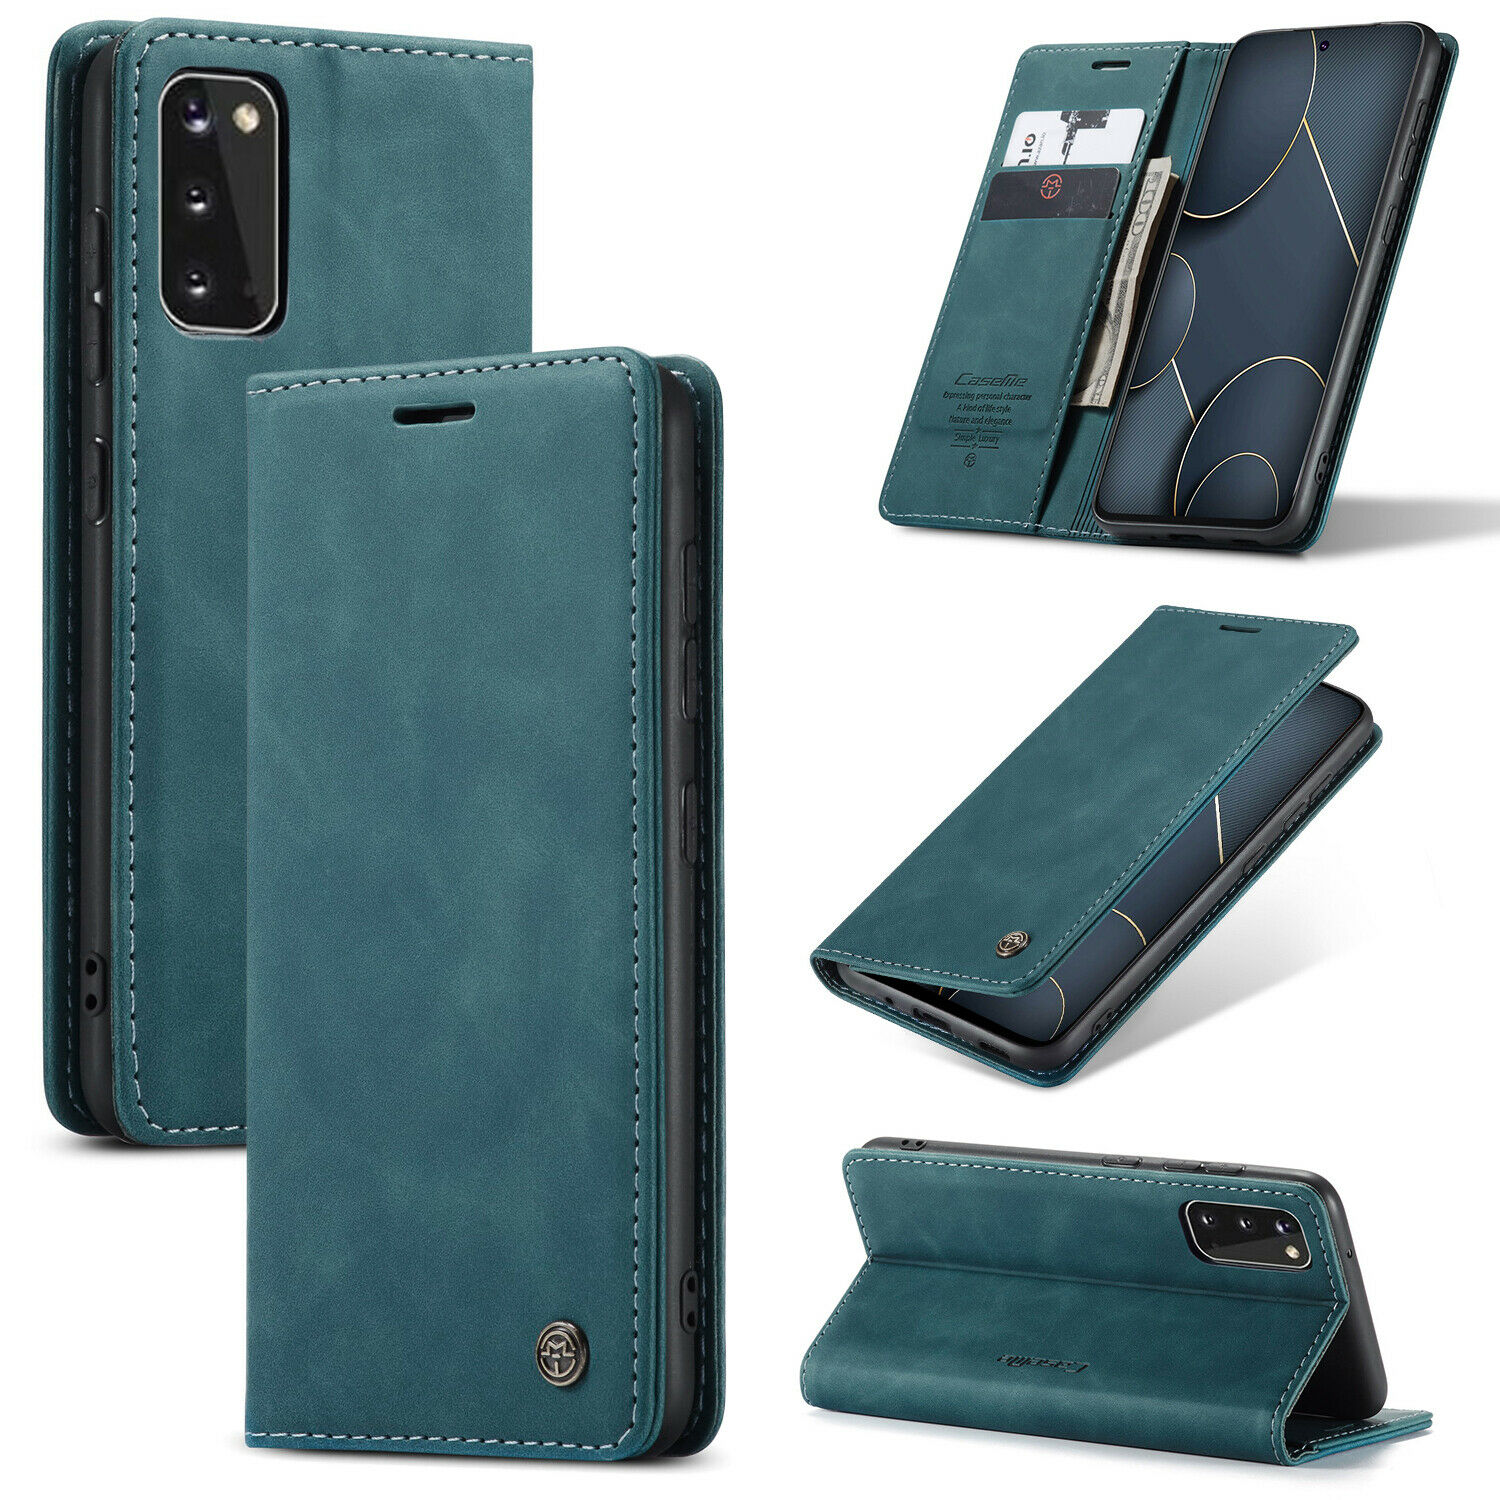 Soft Blue PU Leather Wallet Cover Flip Case for Samsung Galaxy S20 Plus S20+ Compatible with Samsung Galaxy S20 Plus S20+